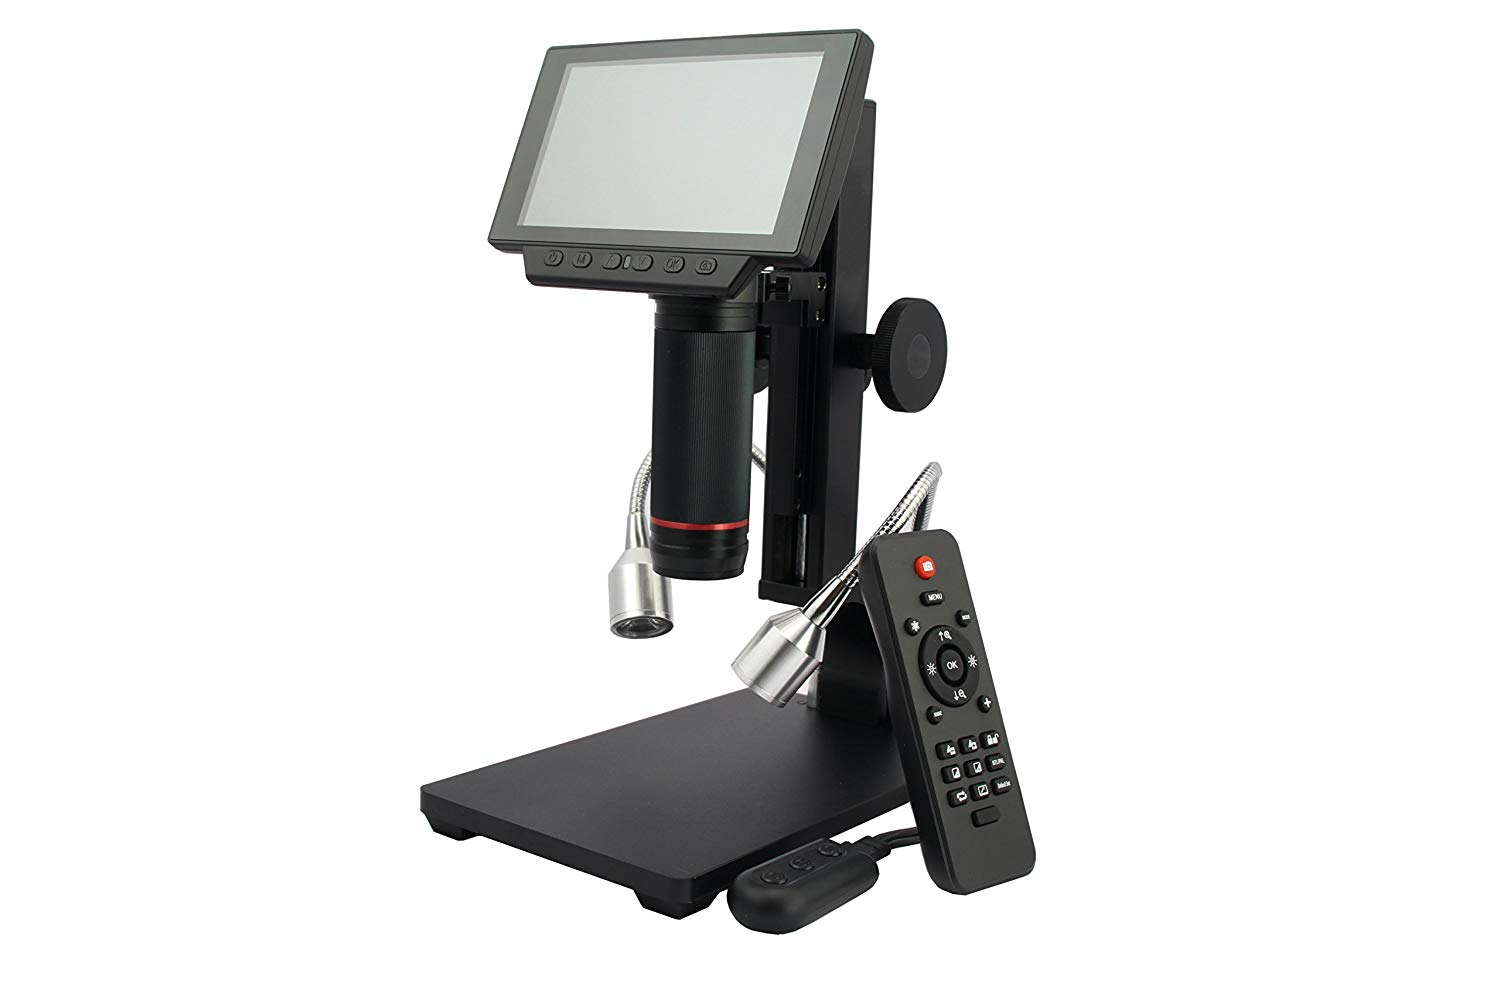 ADSM302 – Andonstar 1080P Digital Microscope for repair work